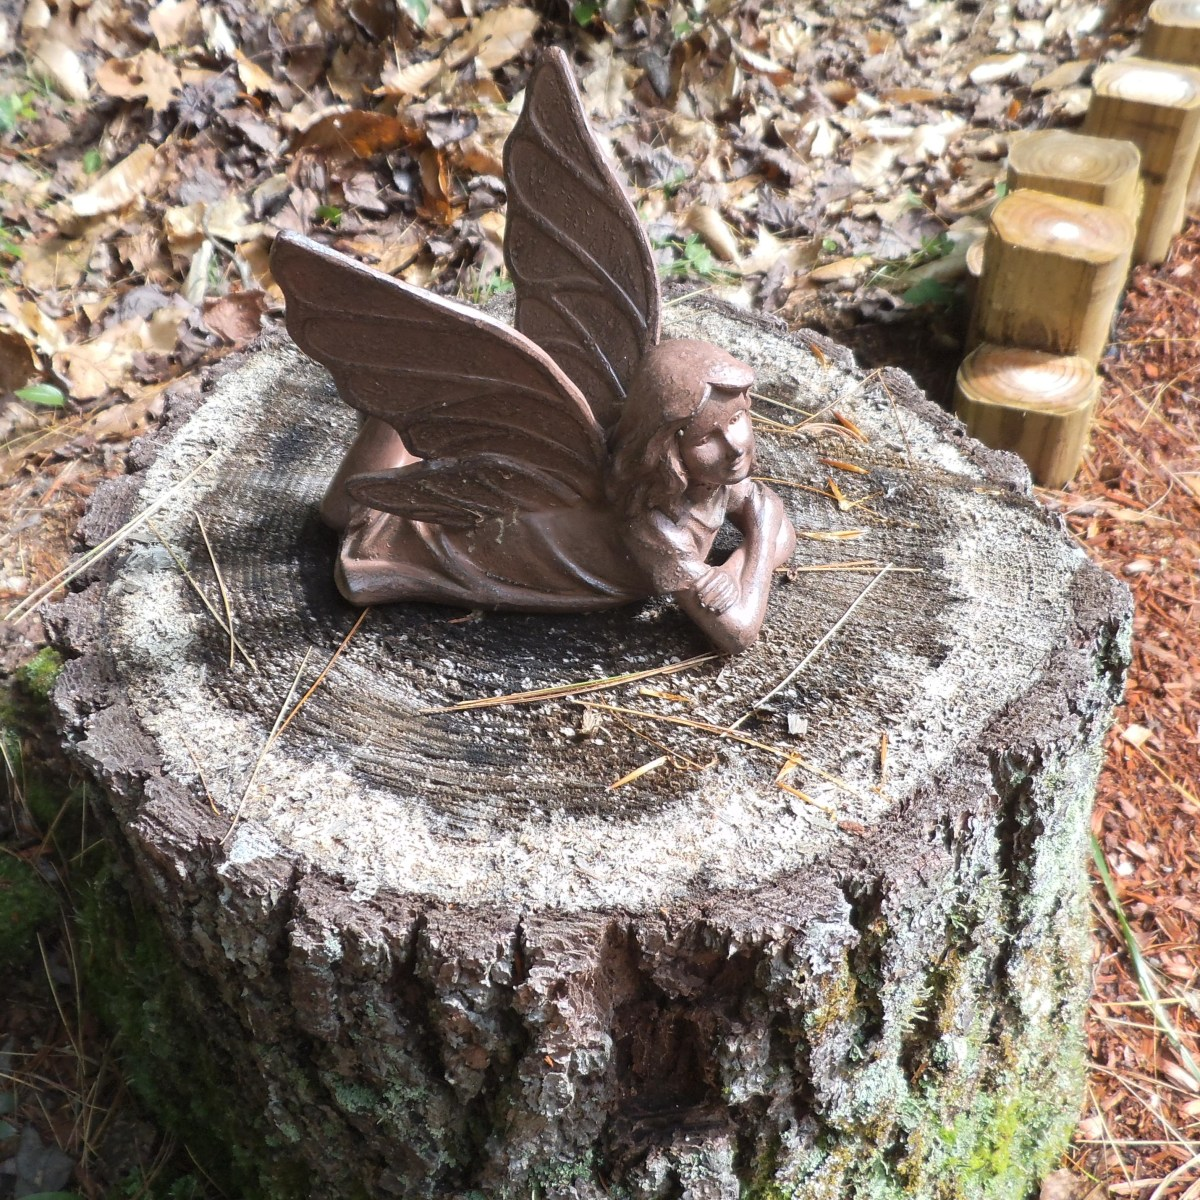 My fairy has no furniture, so she has to lounge on this old tree stump.